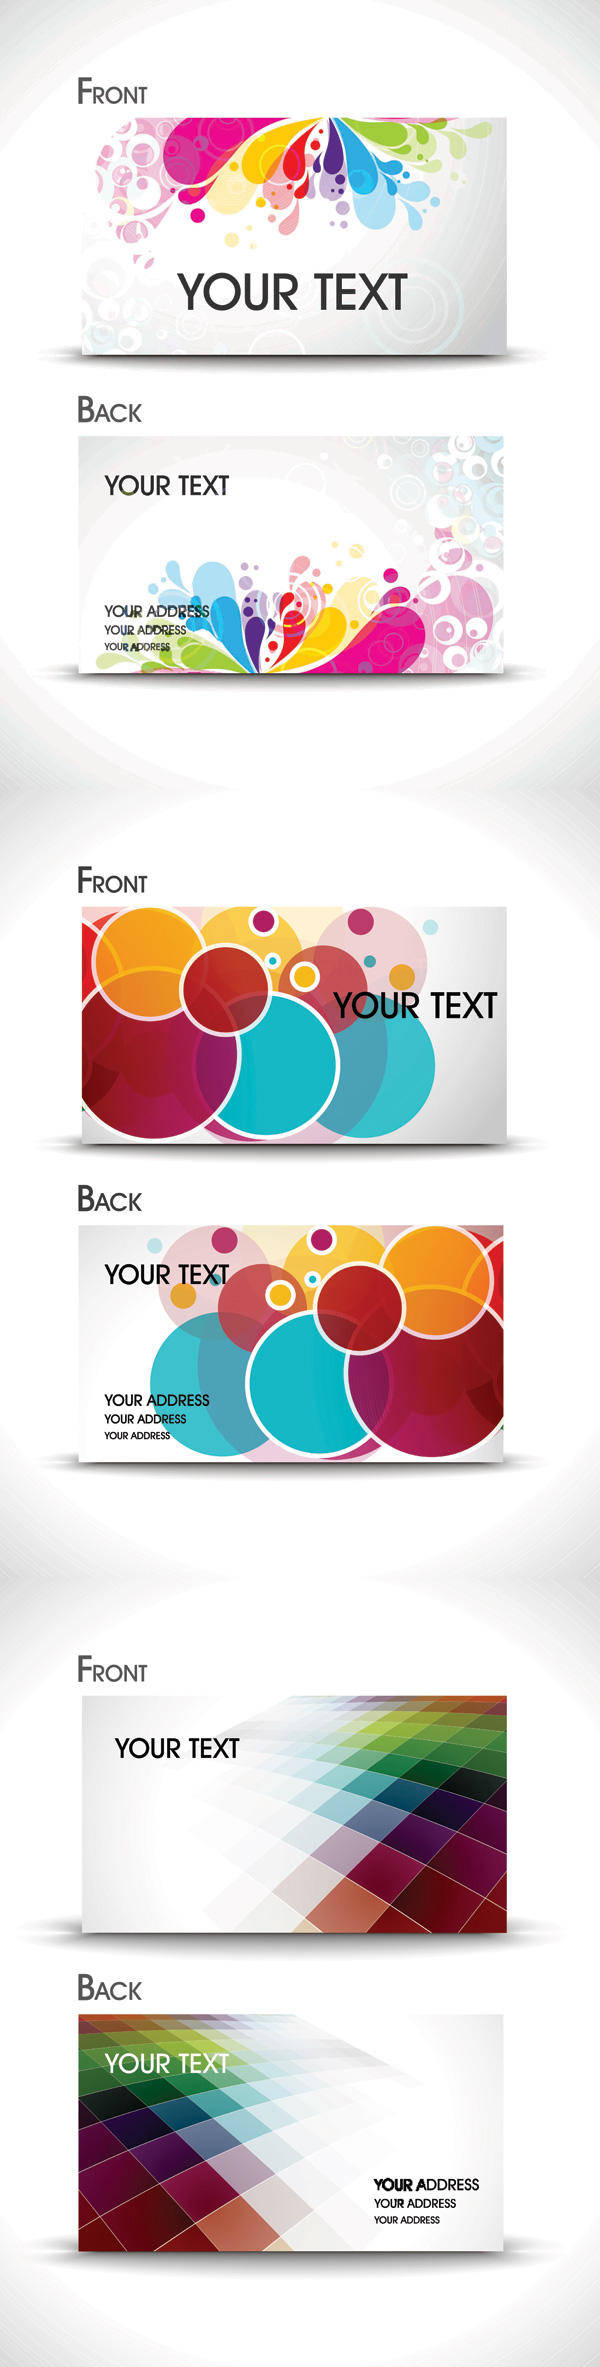 Brilliant Business Card Template - Vector Material Beautiful Cards Bright